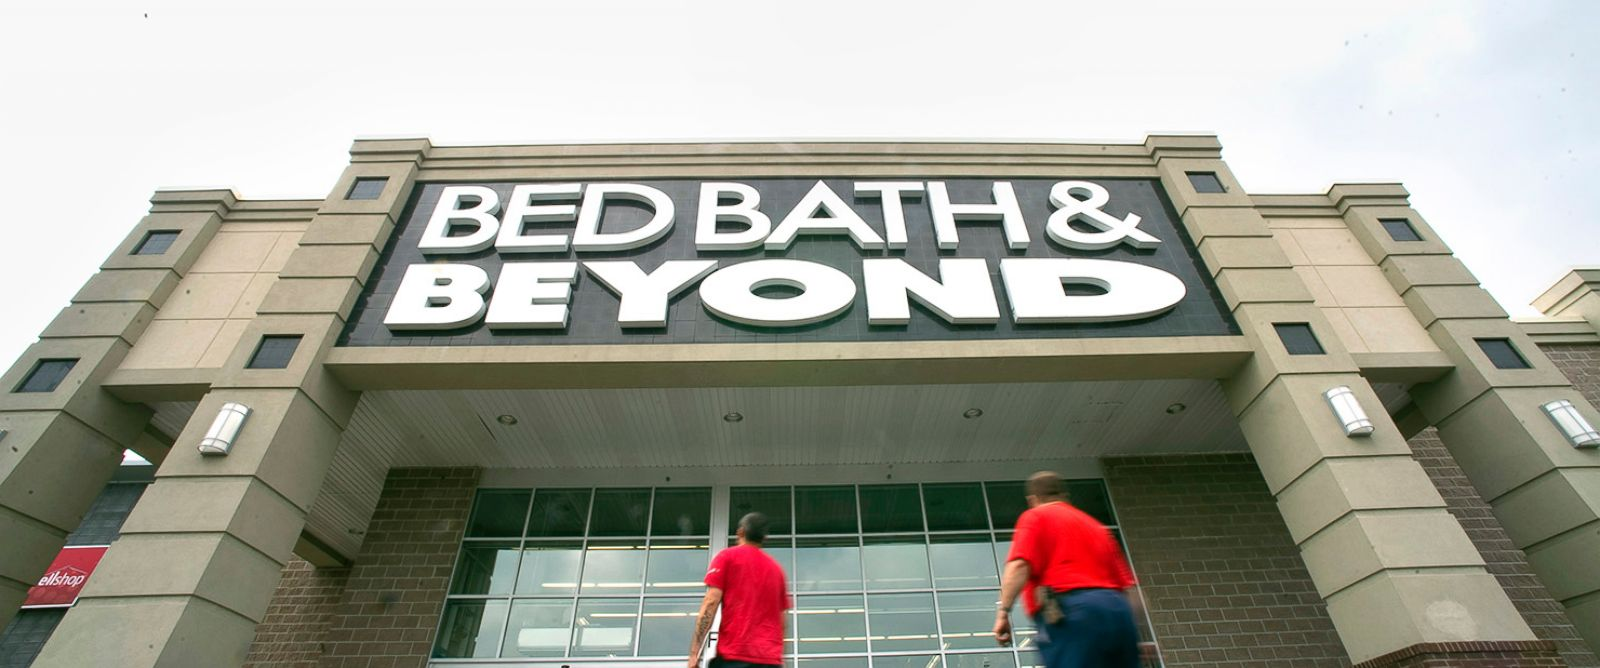 Bed Bath & Beyond Inc., together with its subsidiaries, operates a chain of retail stores. It sells a range of domestics merchandise, including bed linens and related items, bath items, and kitchen textiles; and home furnishings, such as kitchen and tabletop items, fine tabletop, basic housewares, general home furnishings, consumables, and.